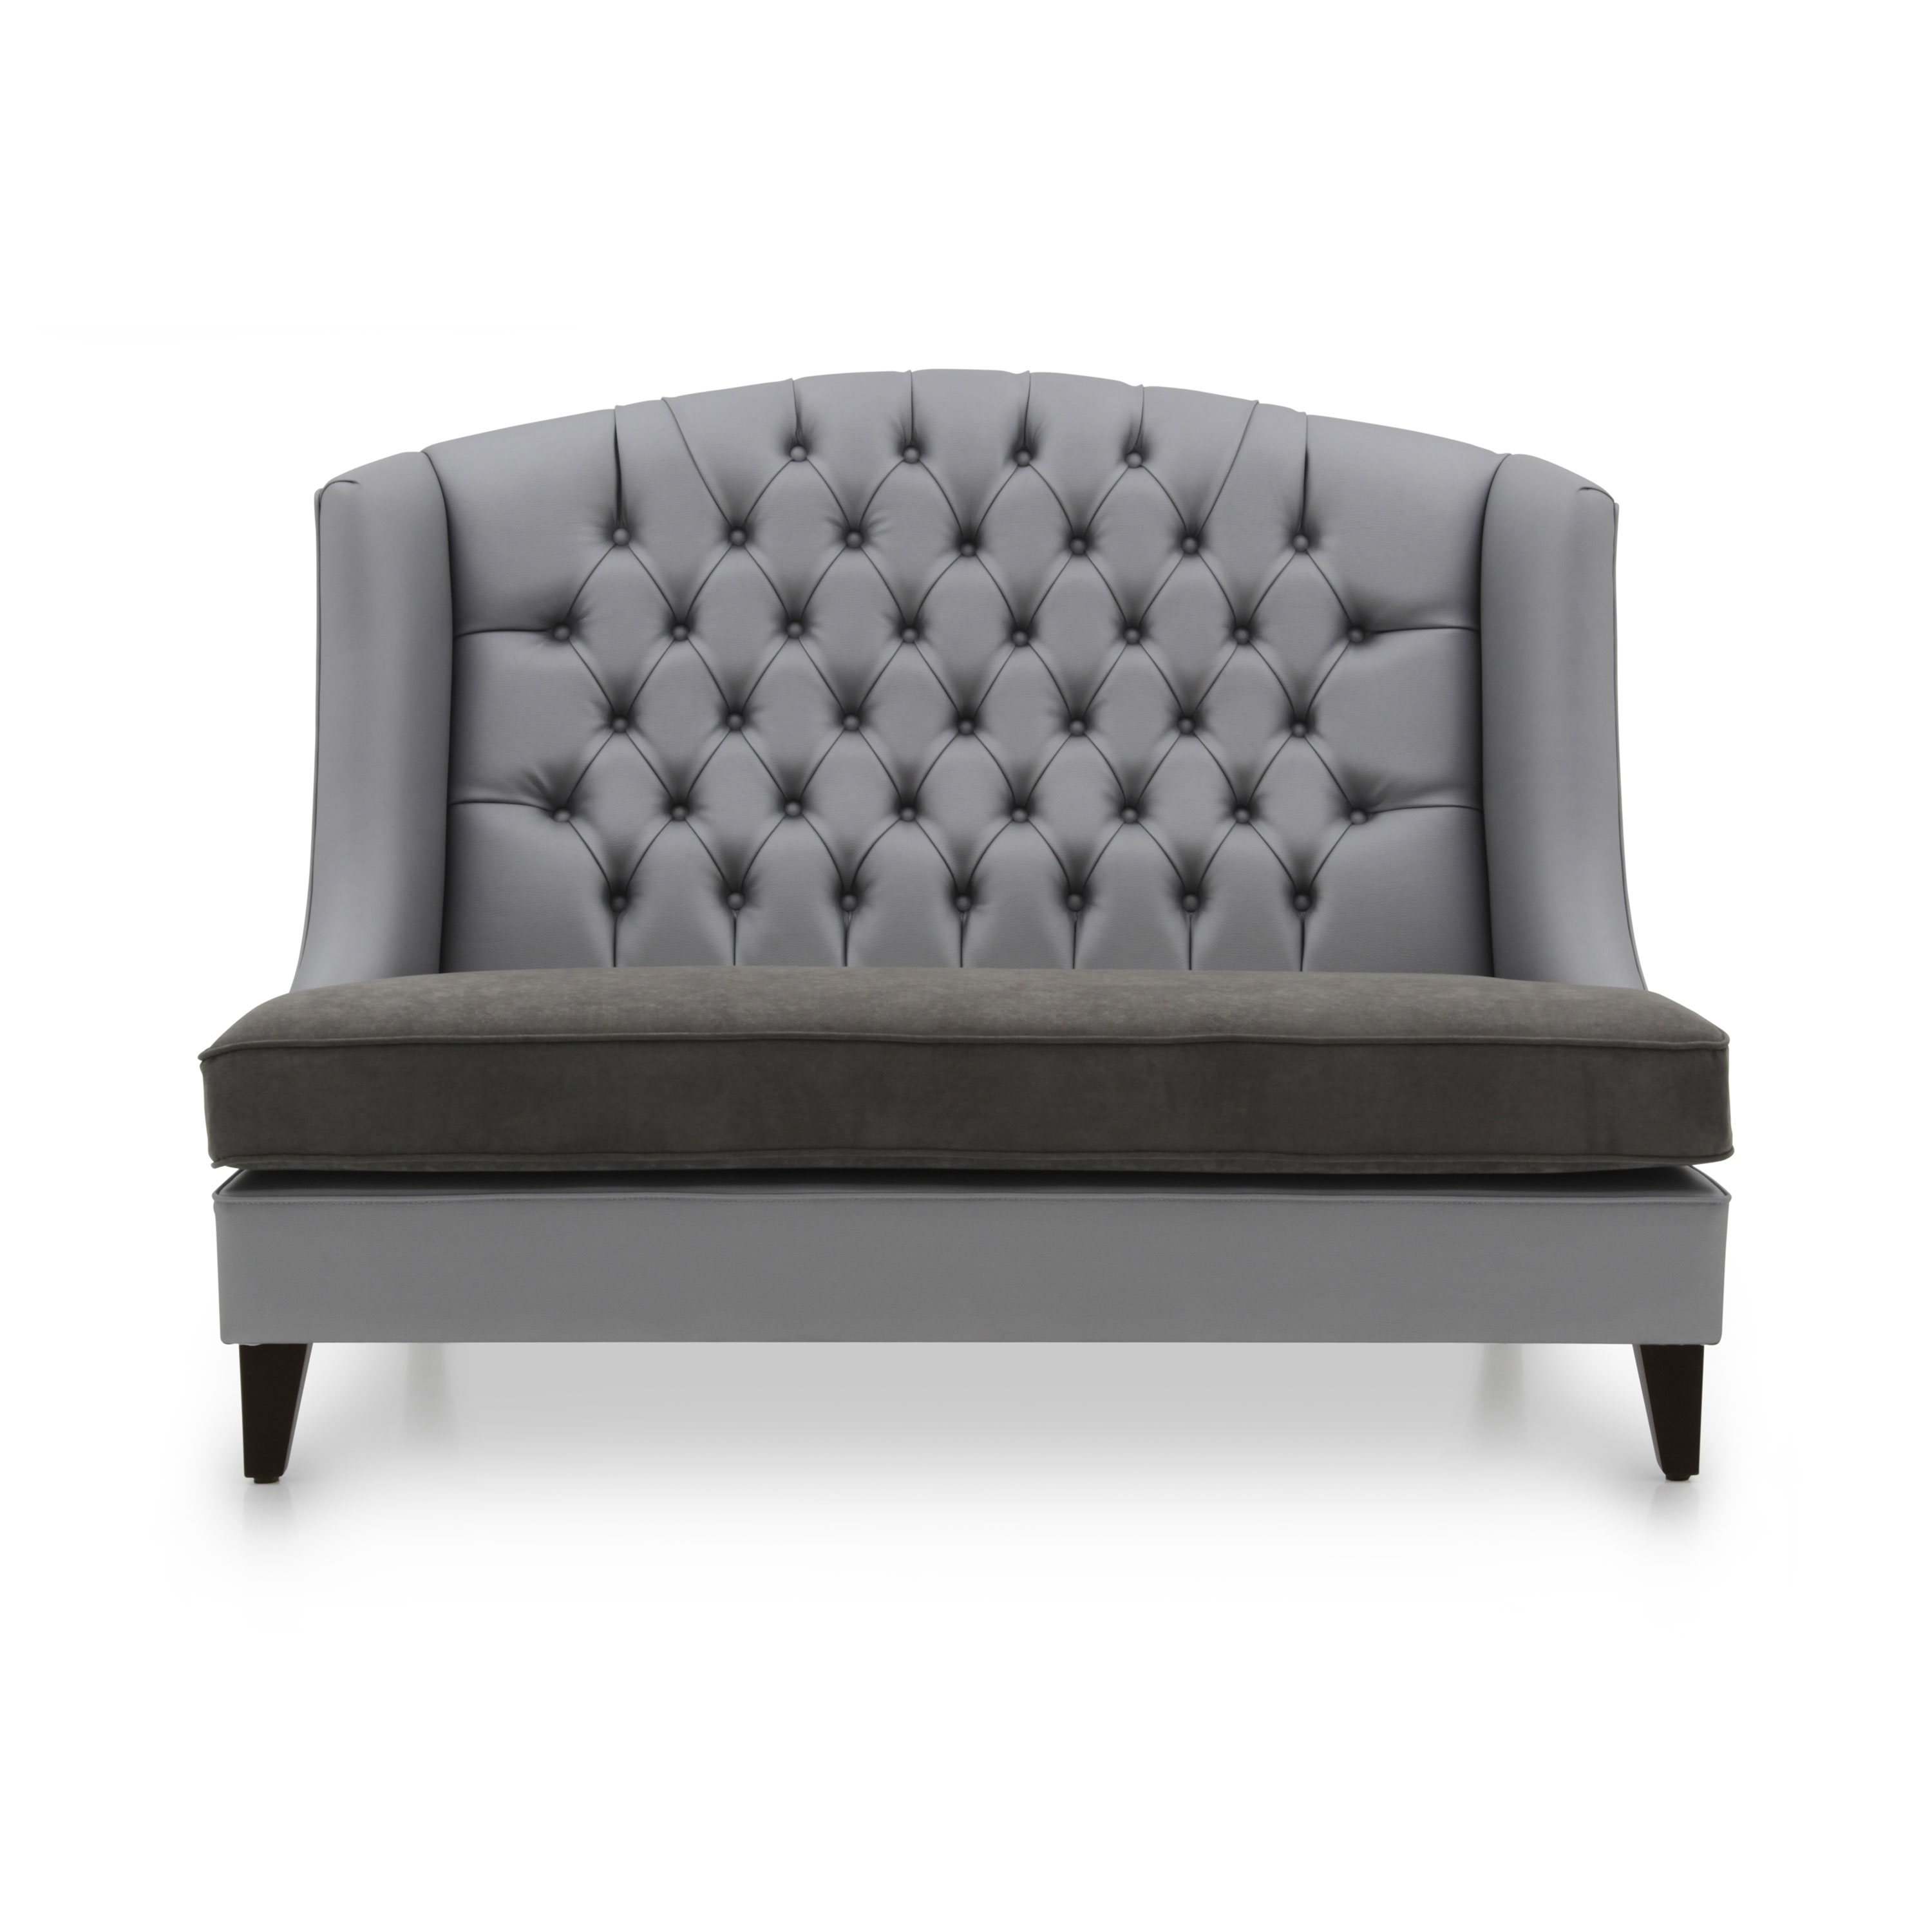 Contemporary Style Sofa Made Of Wood Custom009 999 Sevensedie